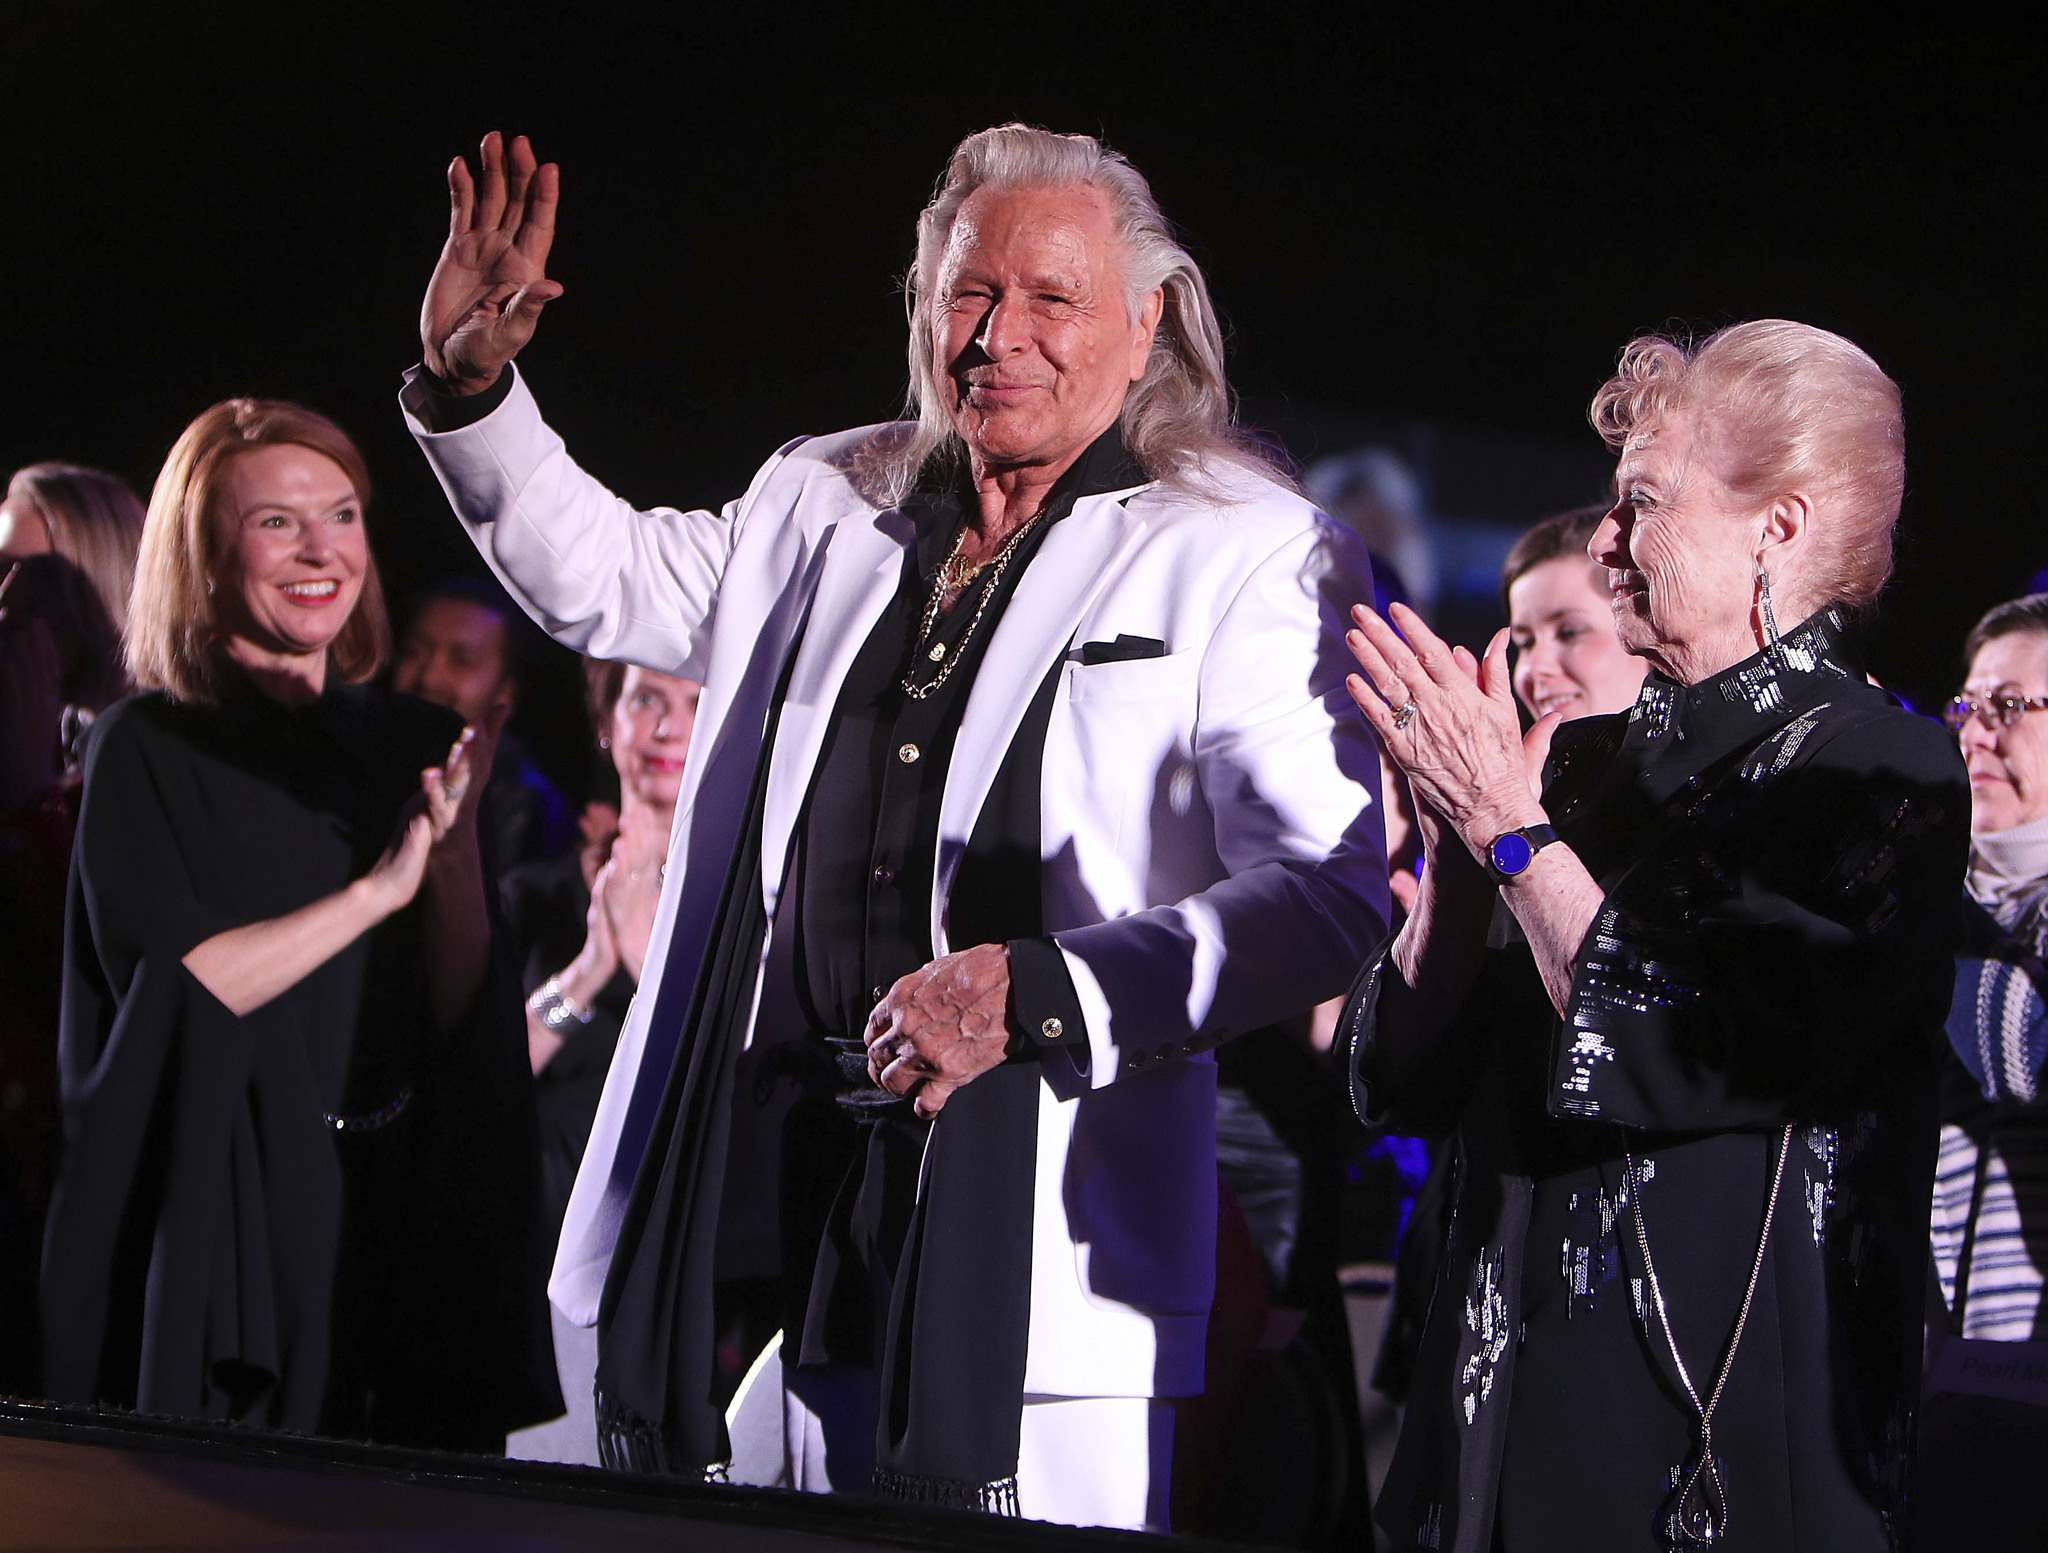 In court affidavits, process servers described being unable to personally serve Nygard with court documents despite being told he was present at his various homes. (Jason Halstead / Winnipeg Free Press files)</p>